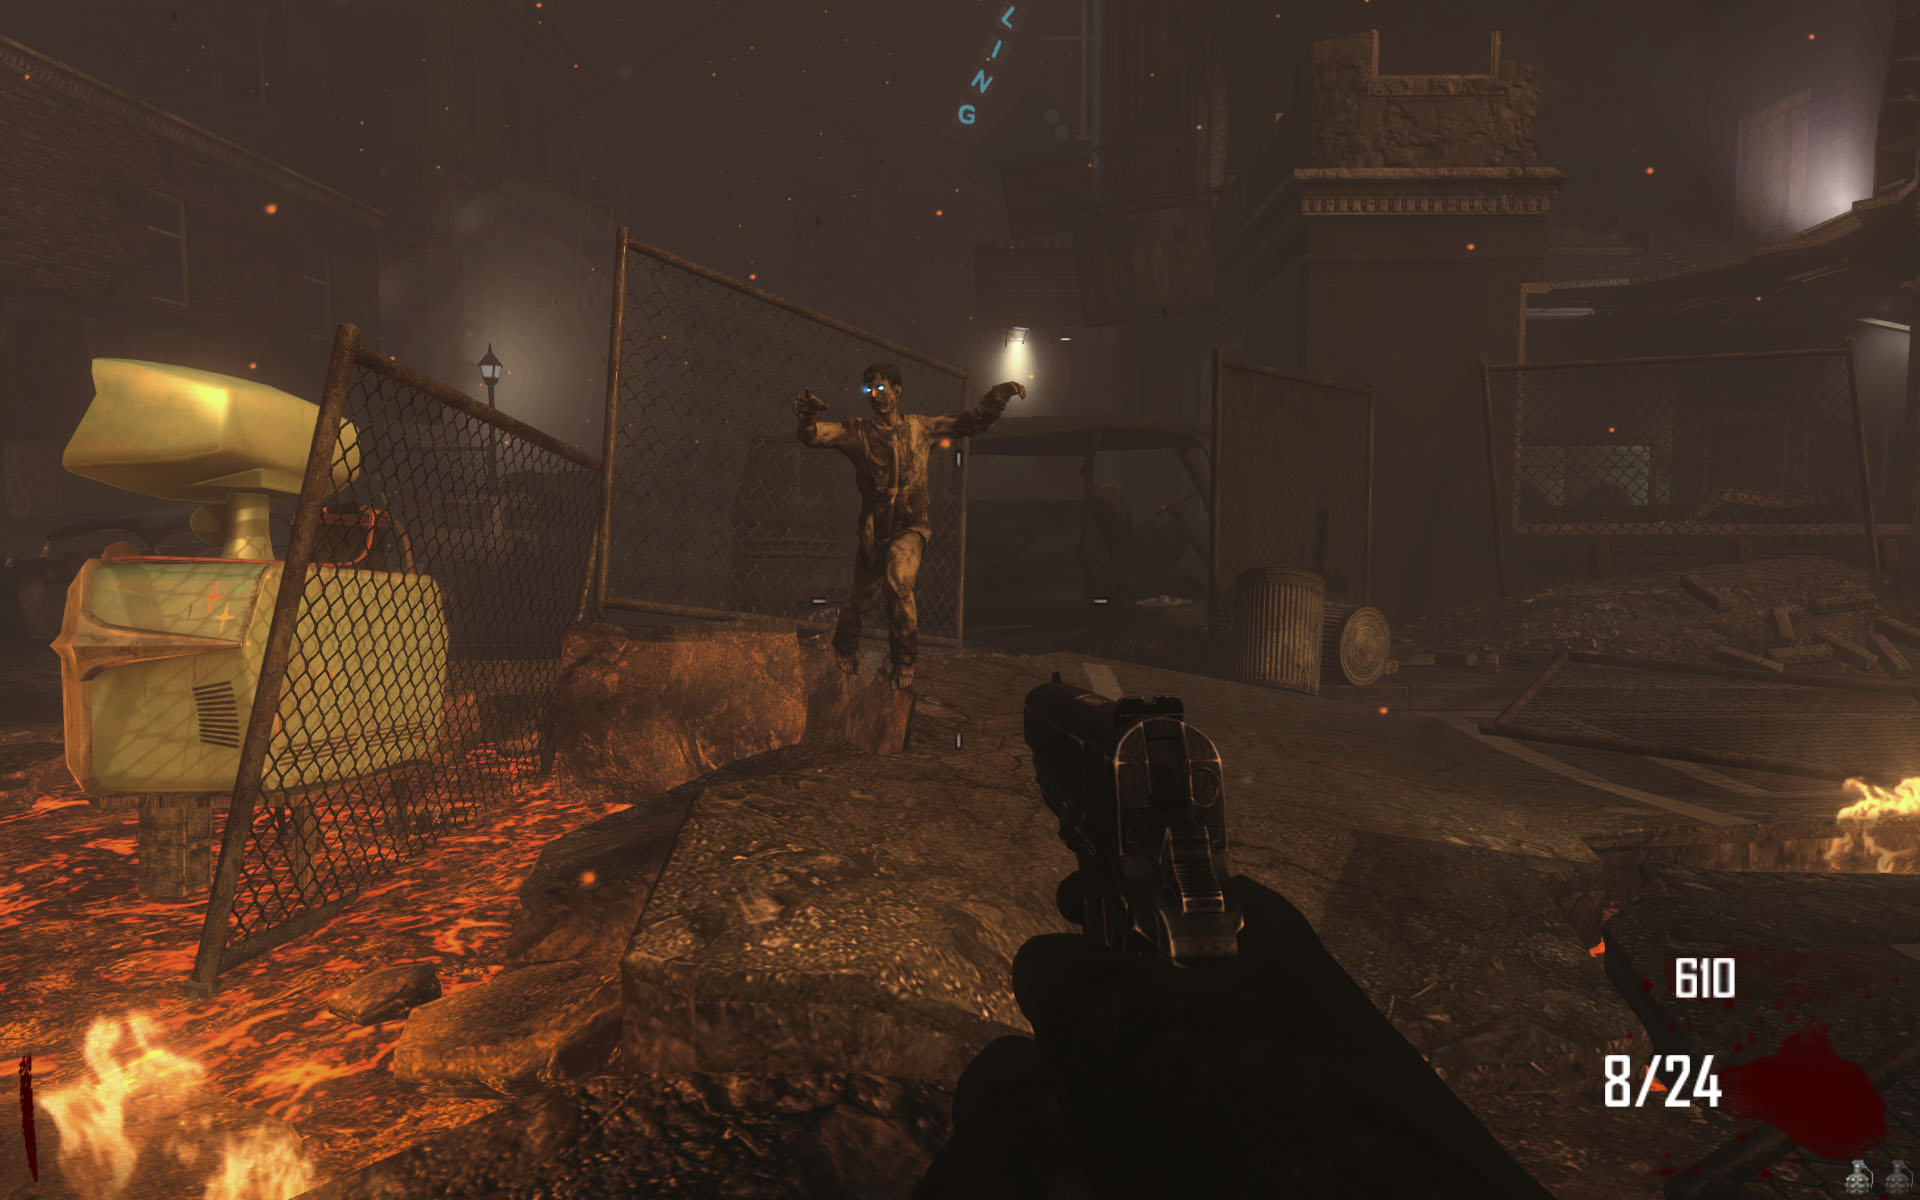 Call of Duty: Black Ops 2 Review - A Killer Sequel